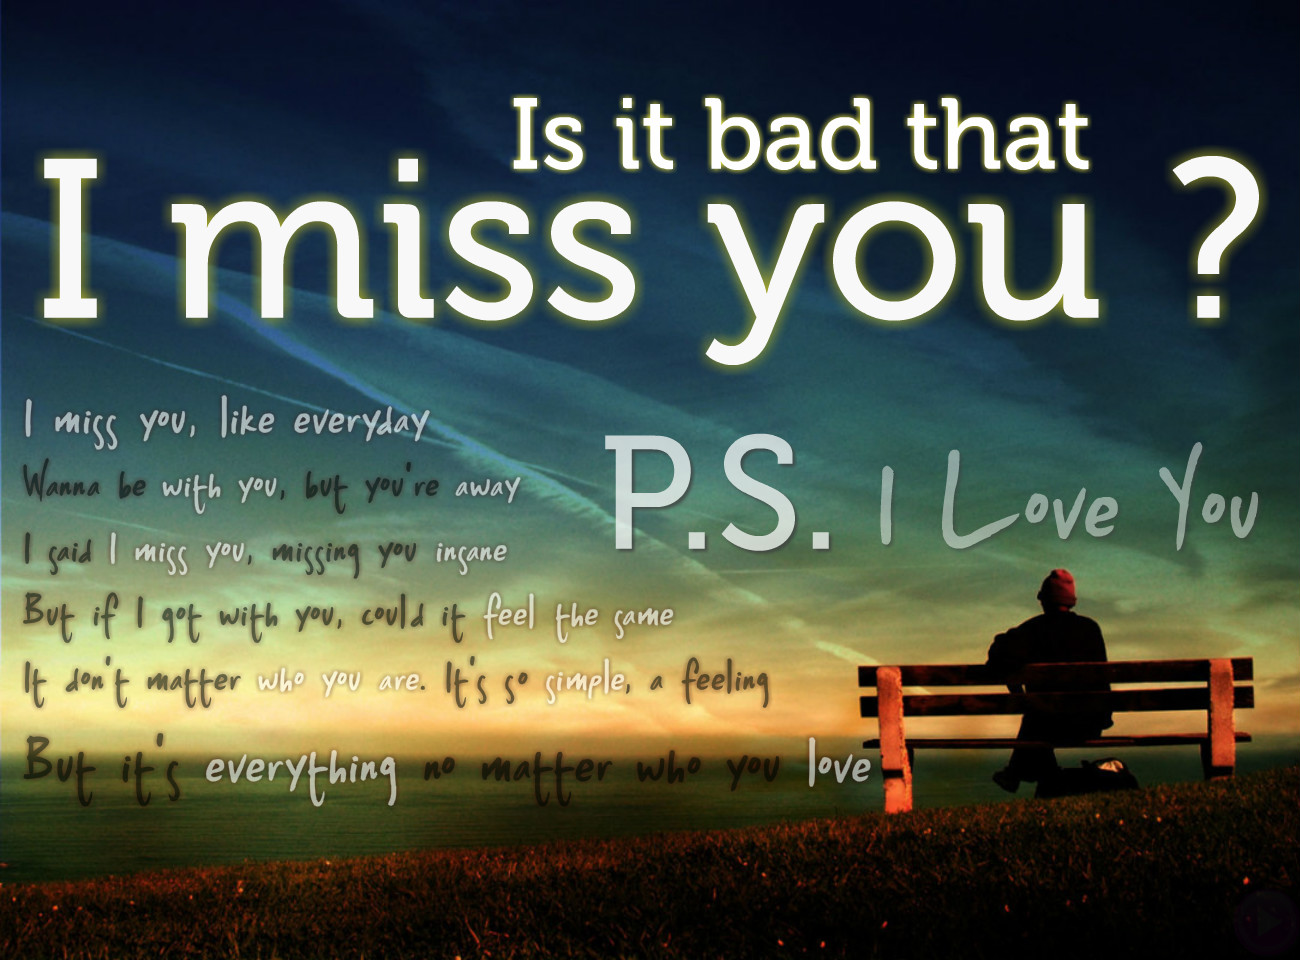 Missing You Love Quotes For Her Best Romantic Messages  Flirty Text Messages  Everlasting Love I